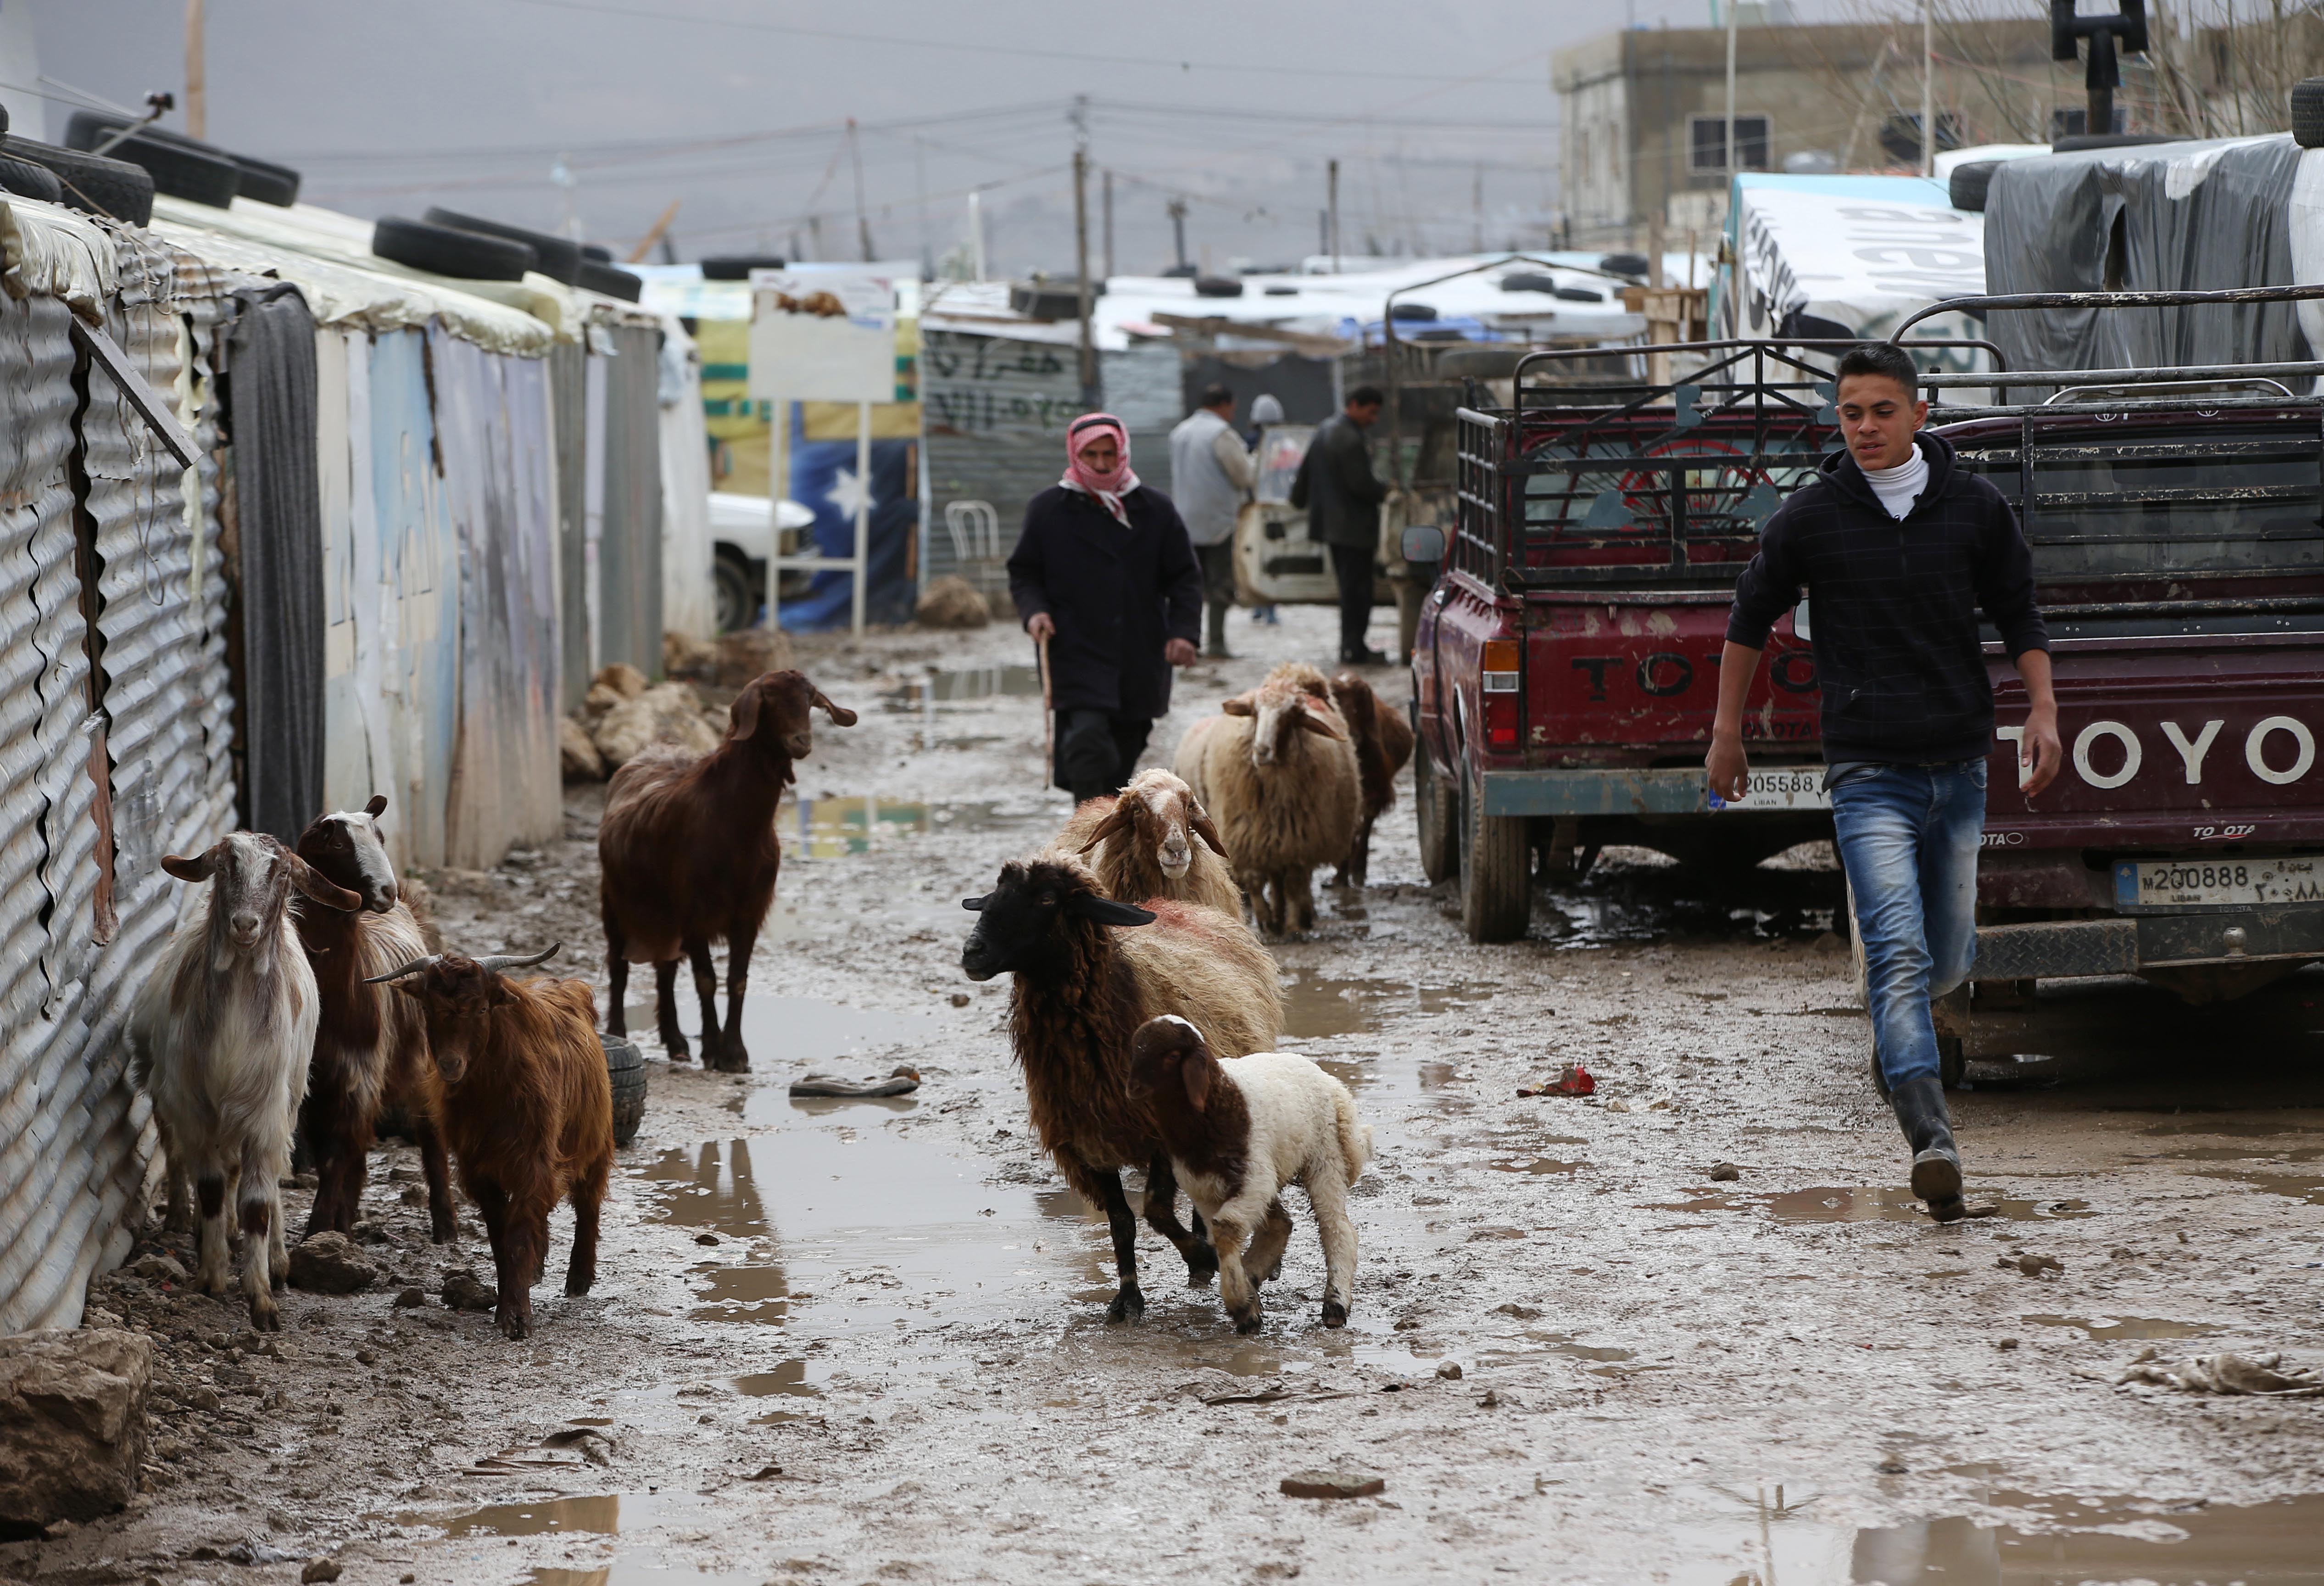 A Syrian man leads goats and sheep through mud from the heavy rains at a refugee camp in the town of Marej in the Bekaa valley, east Lebanon